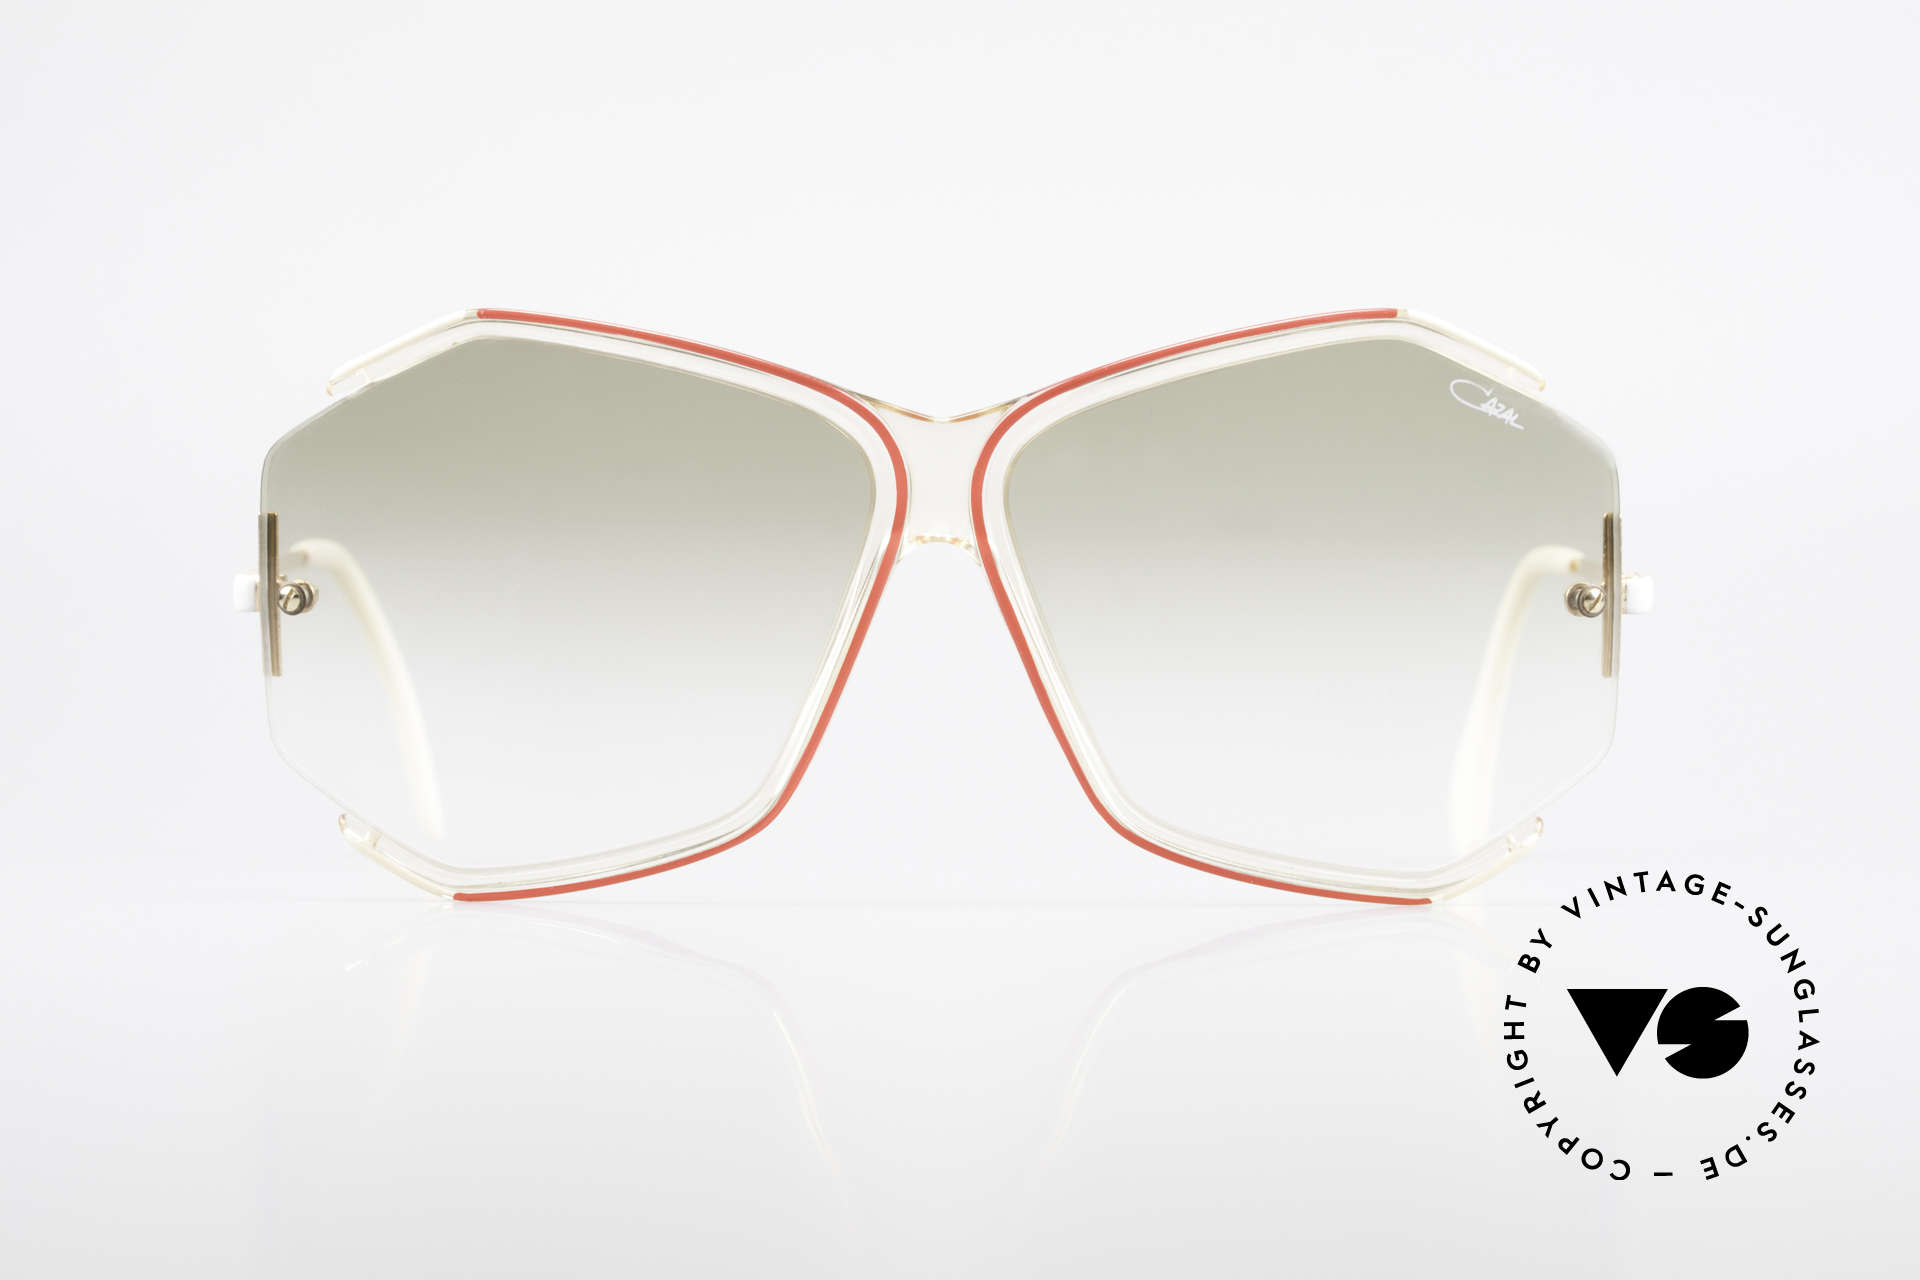 Cazal 852 Vintage 80's Sunglasses XXL, enchanting filigree frame design with classic colors, Made for Women